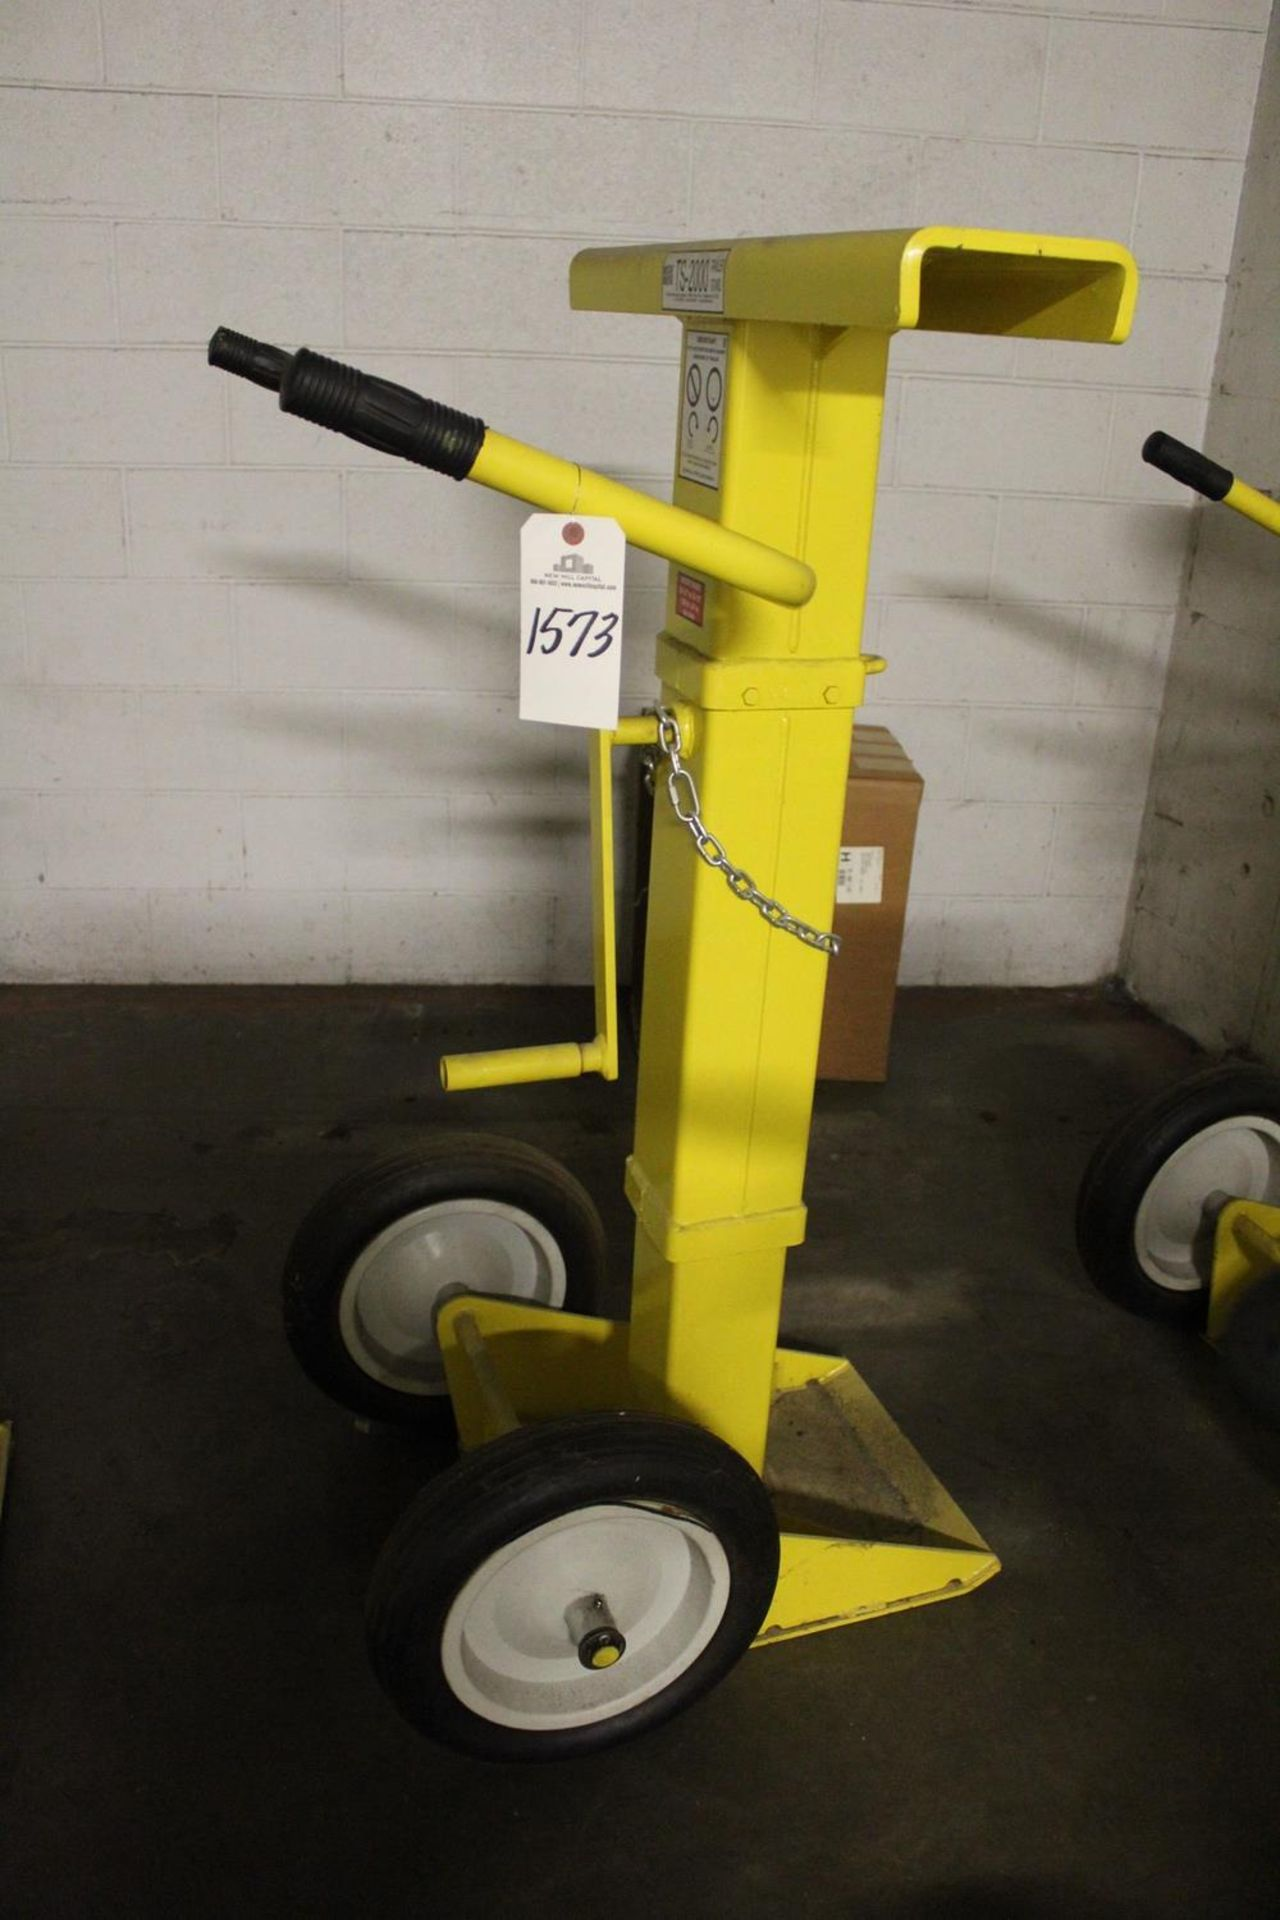 Lot 1573 - Rite Hite TS-2000 Trailer Stand - Subject to Bulk Bid Lot 15 | Rig Fee: Hand Carry or Contact Rigger